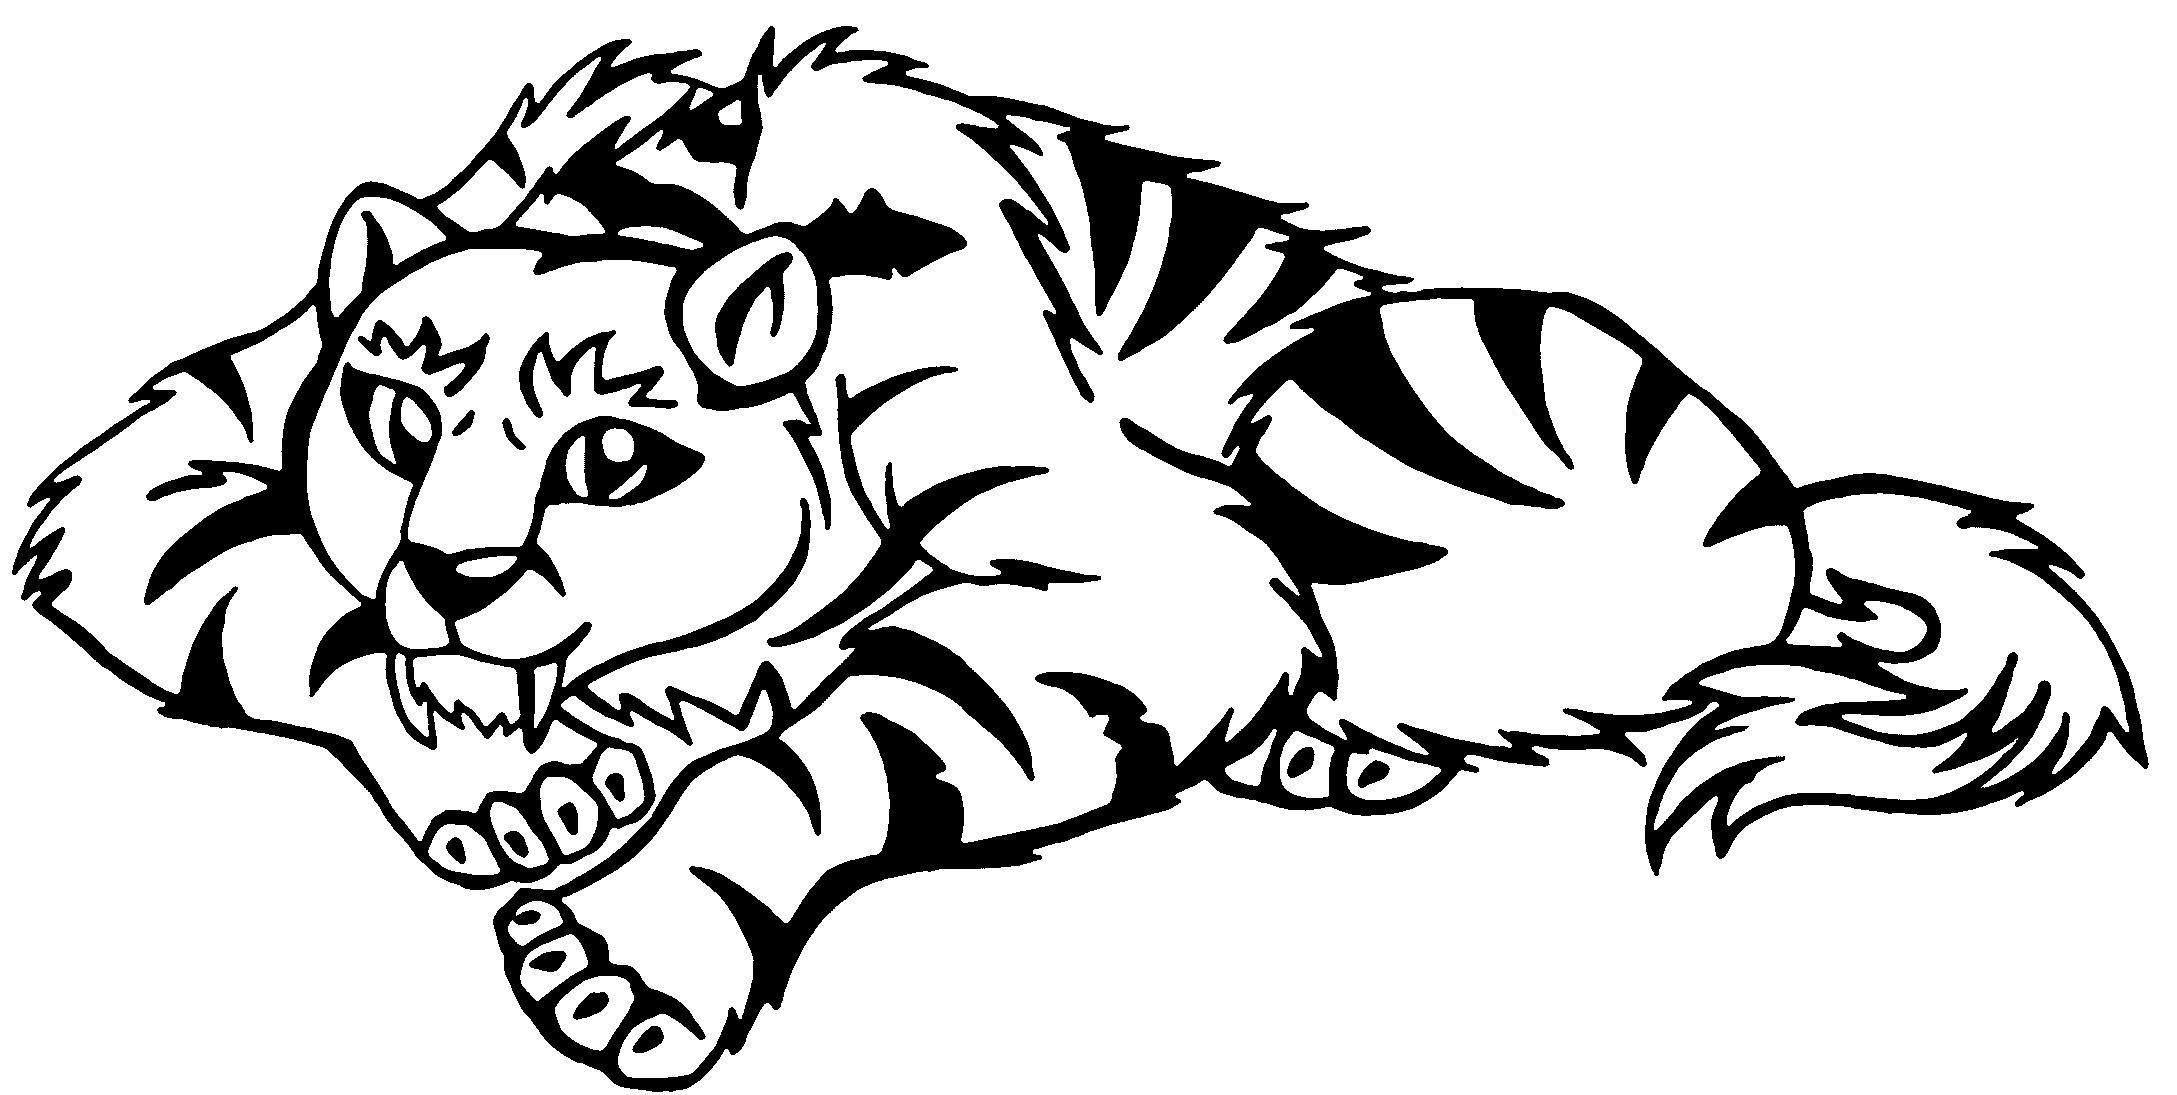 Saber Tooth Tiger Tattoo Sabre Tooth Tiger Tattoo Animal Coloring Pages Shark Coloring Pages Coloring Pages